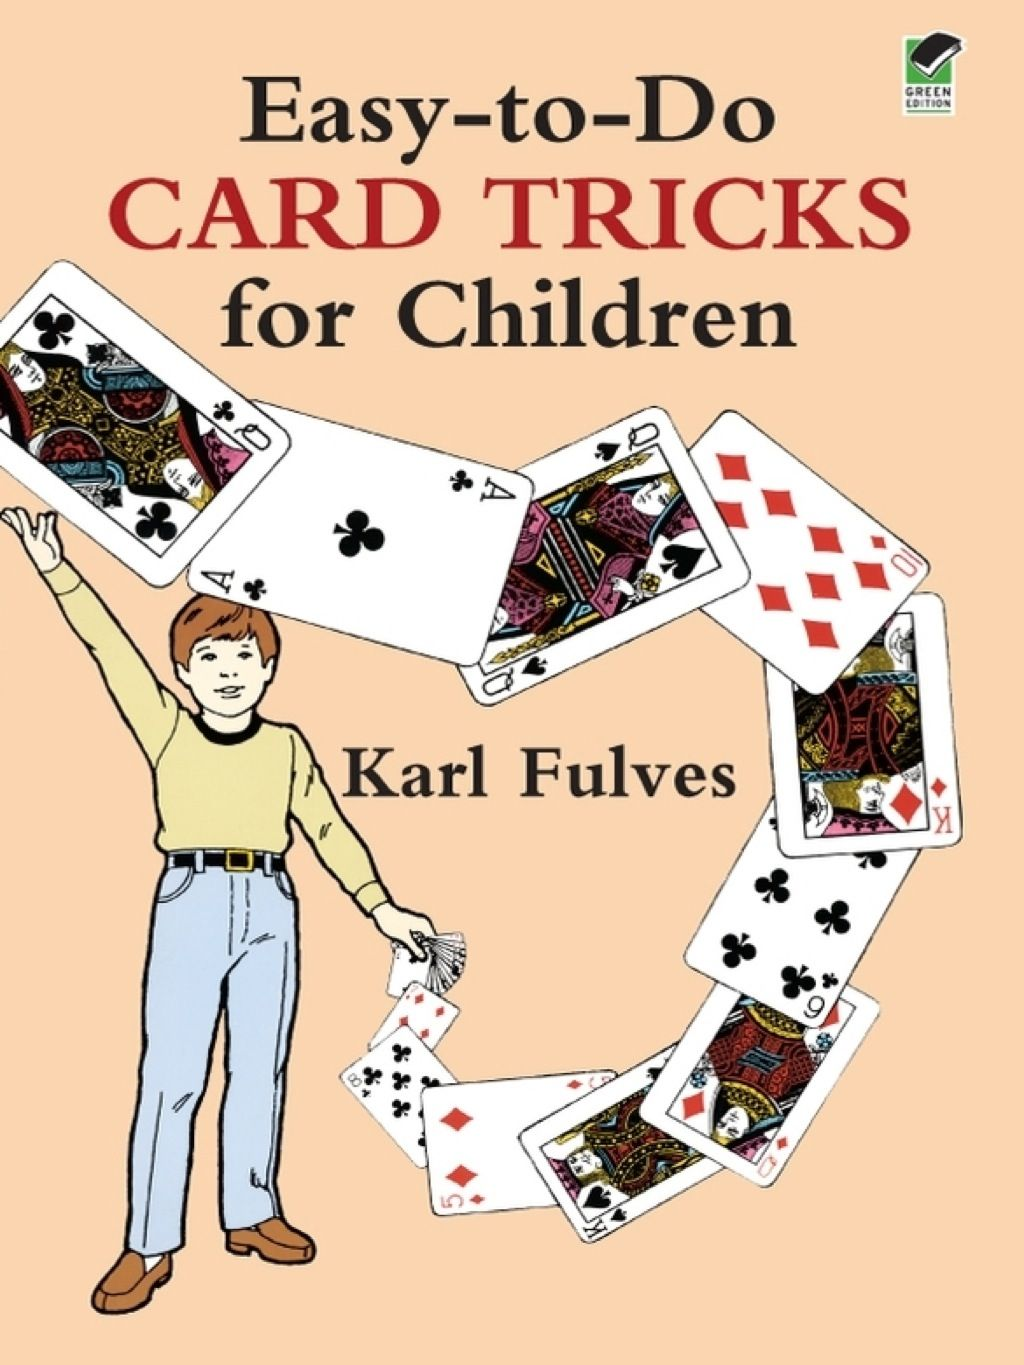 Easy-to-Do Card Tricks for Children (eBook) (With images ...